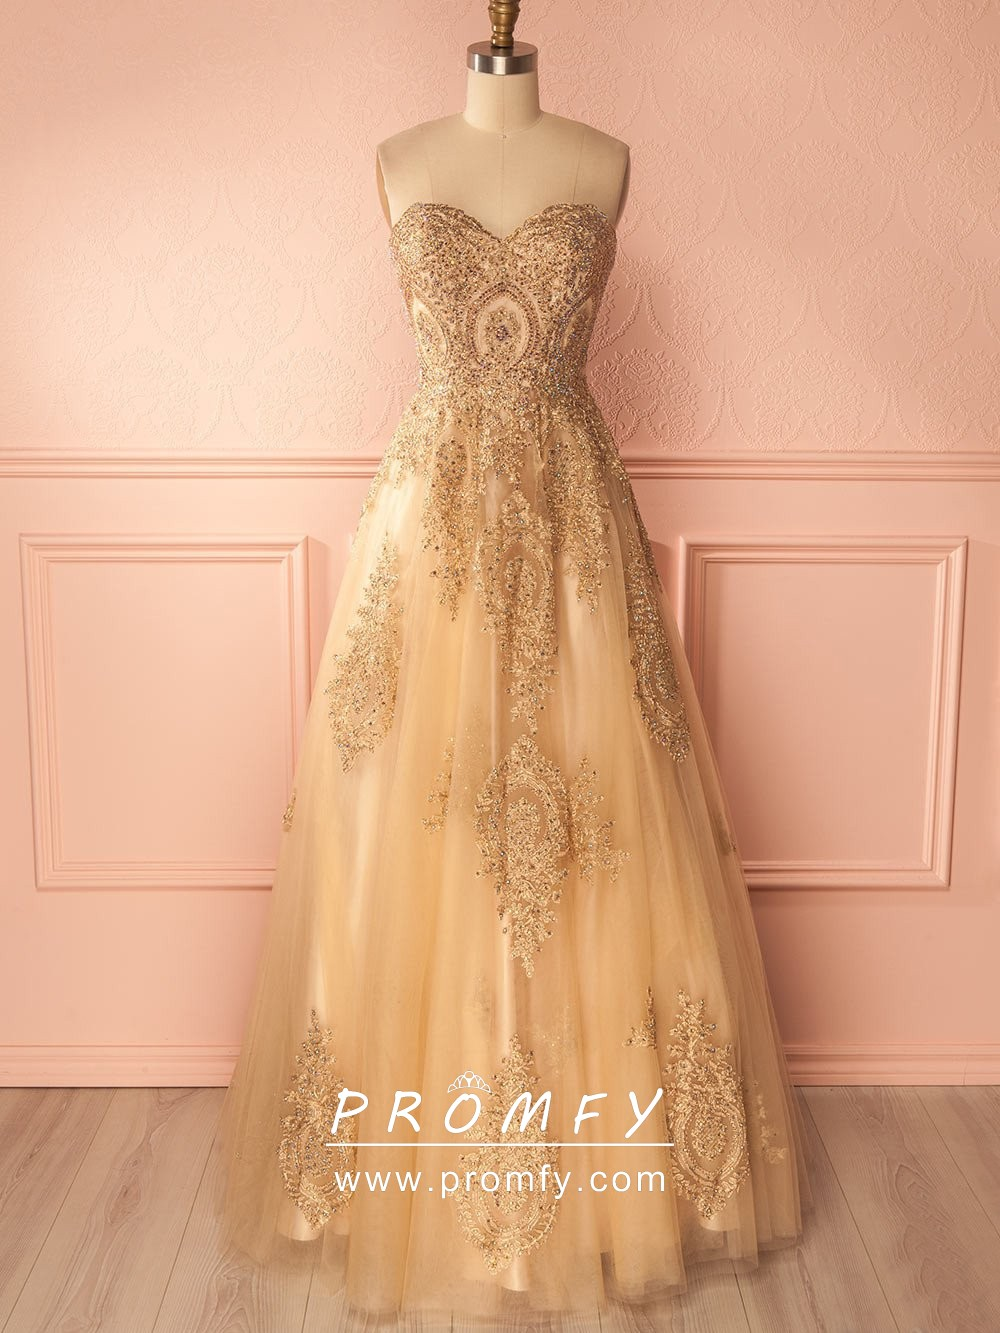 0e4df76a5f0 Sparkly beaded lace appliqued gold tulle puffy A line long prom dress